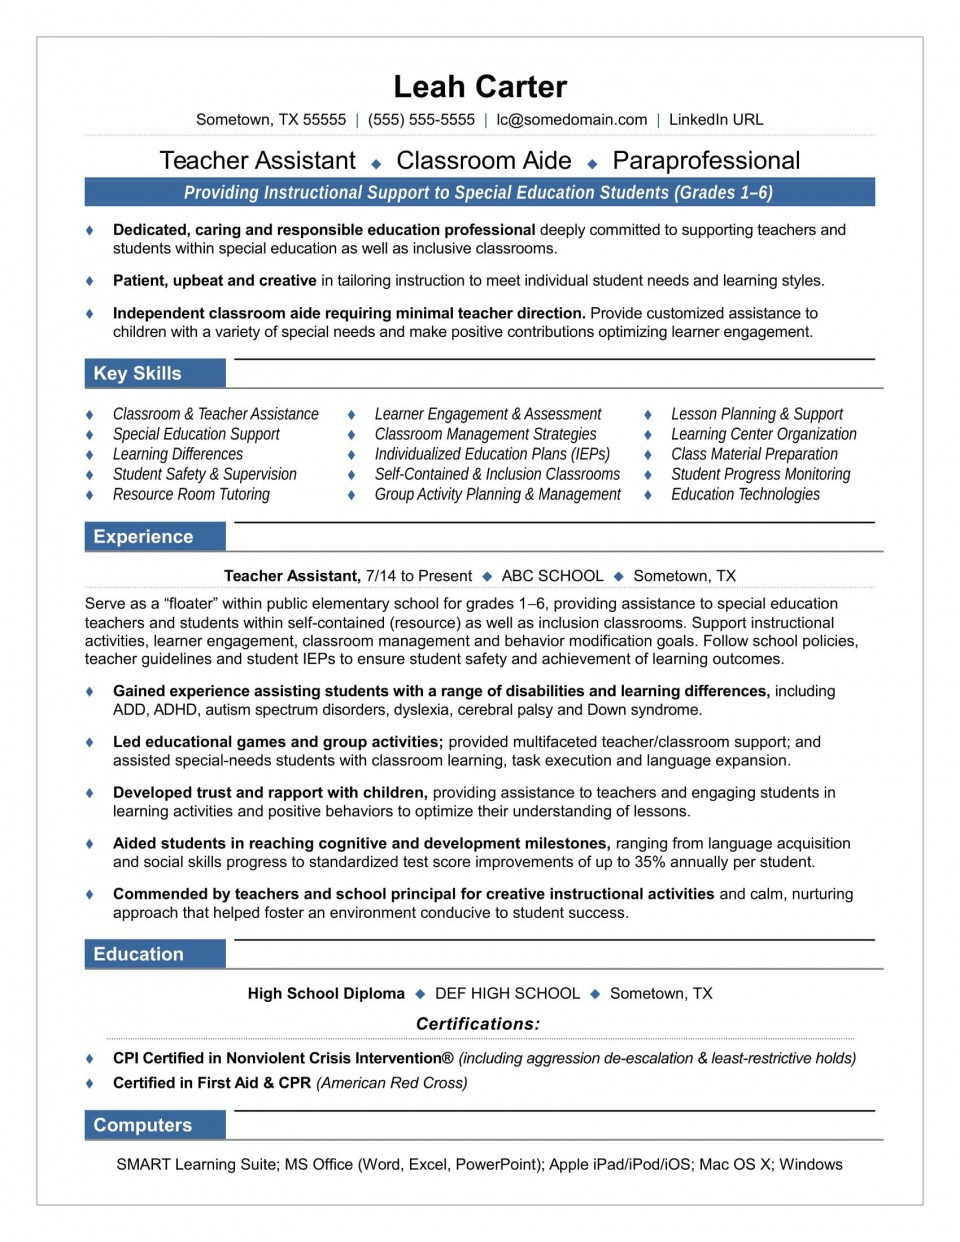 008 Fantastic Resume Example For Teaching Job High Definition  Sample Position In College Format960